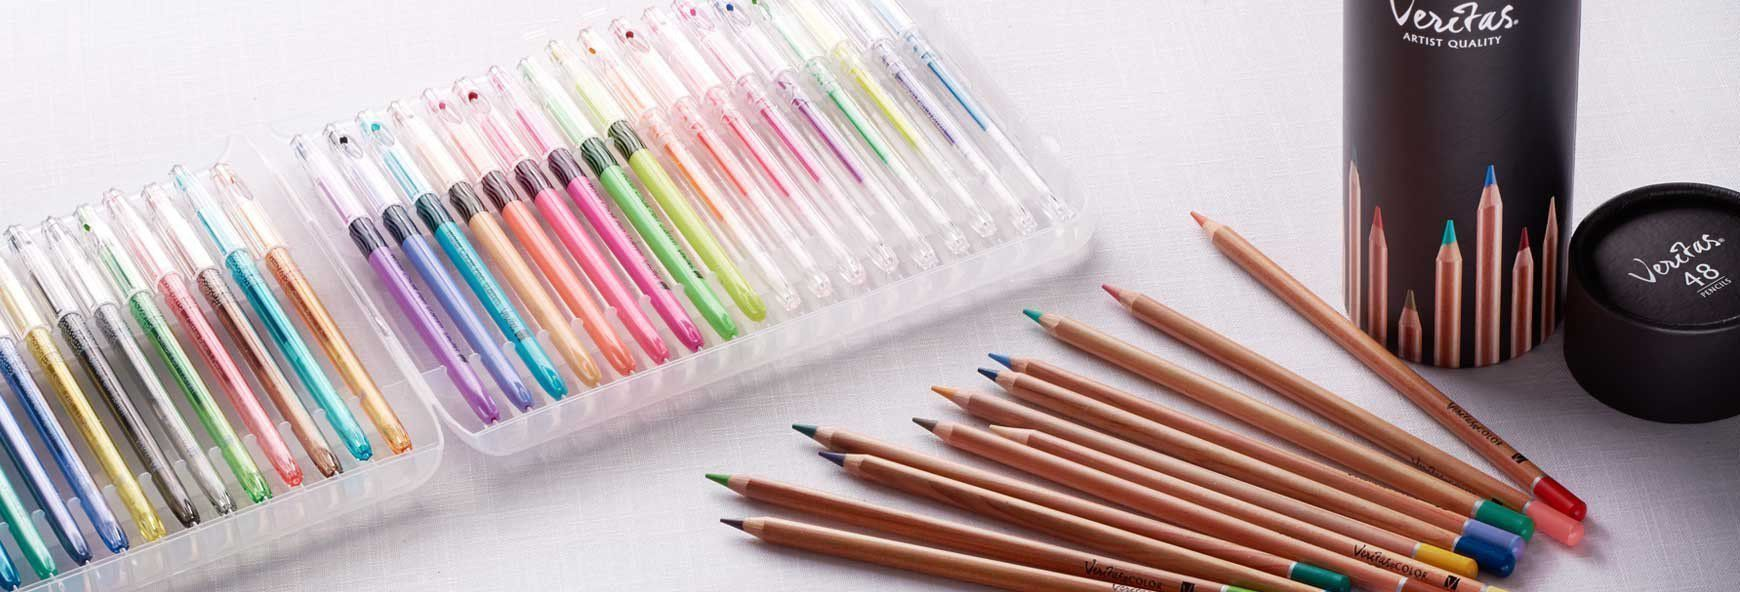 Coloring Supplies | Coloring Pencils | Coloring Pens – KJV Bibles